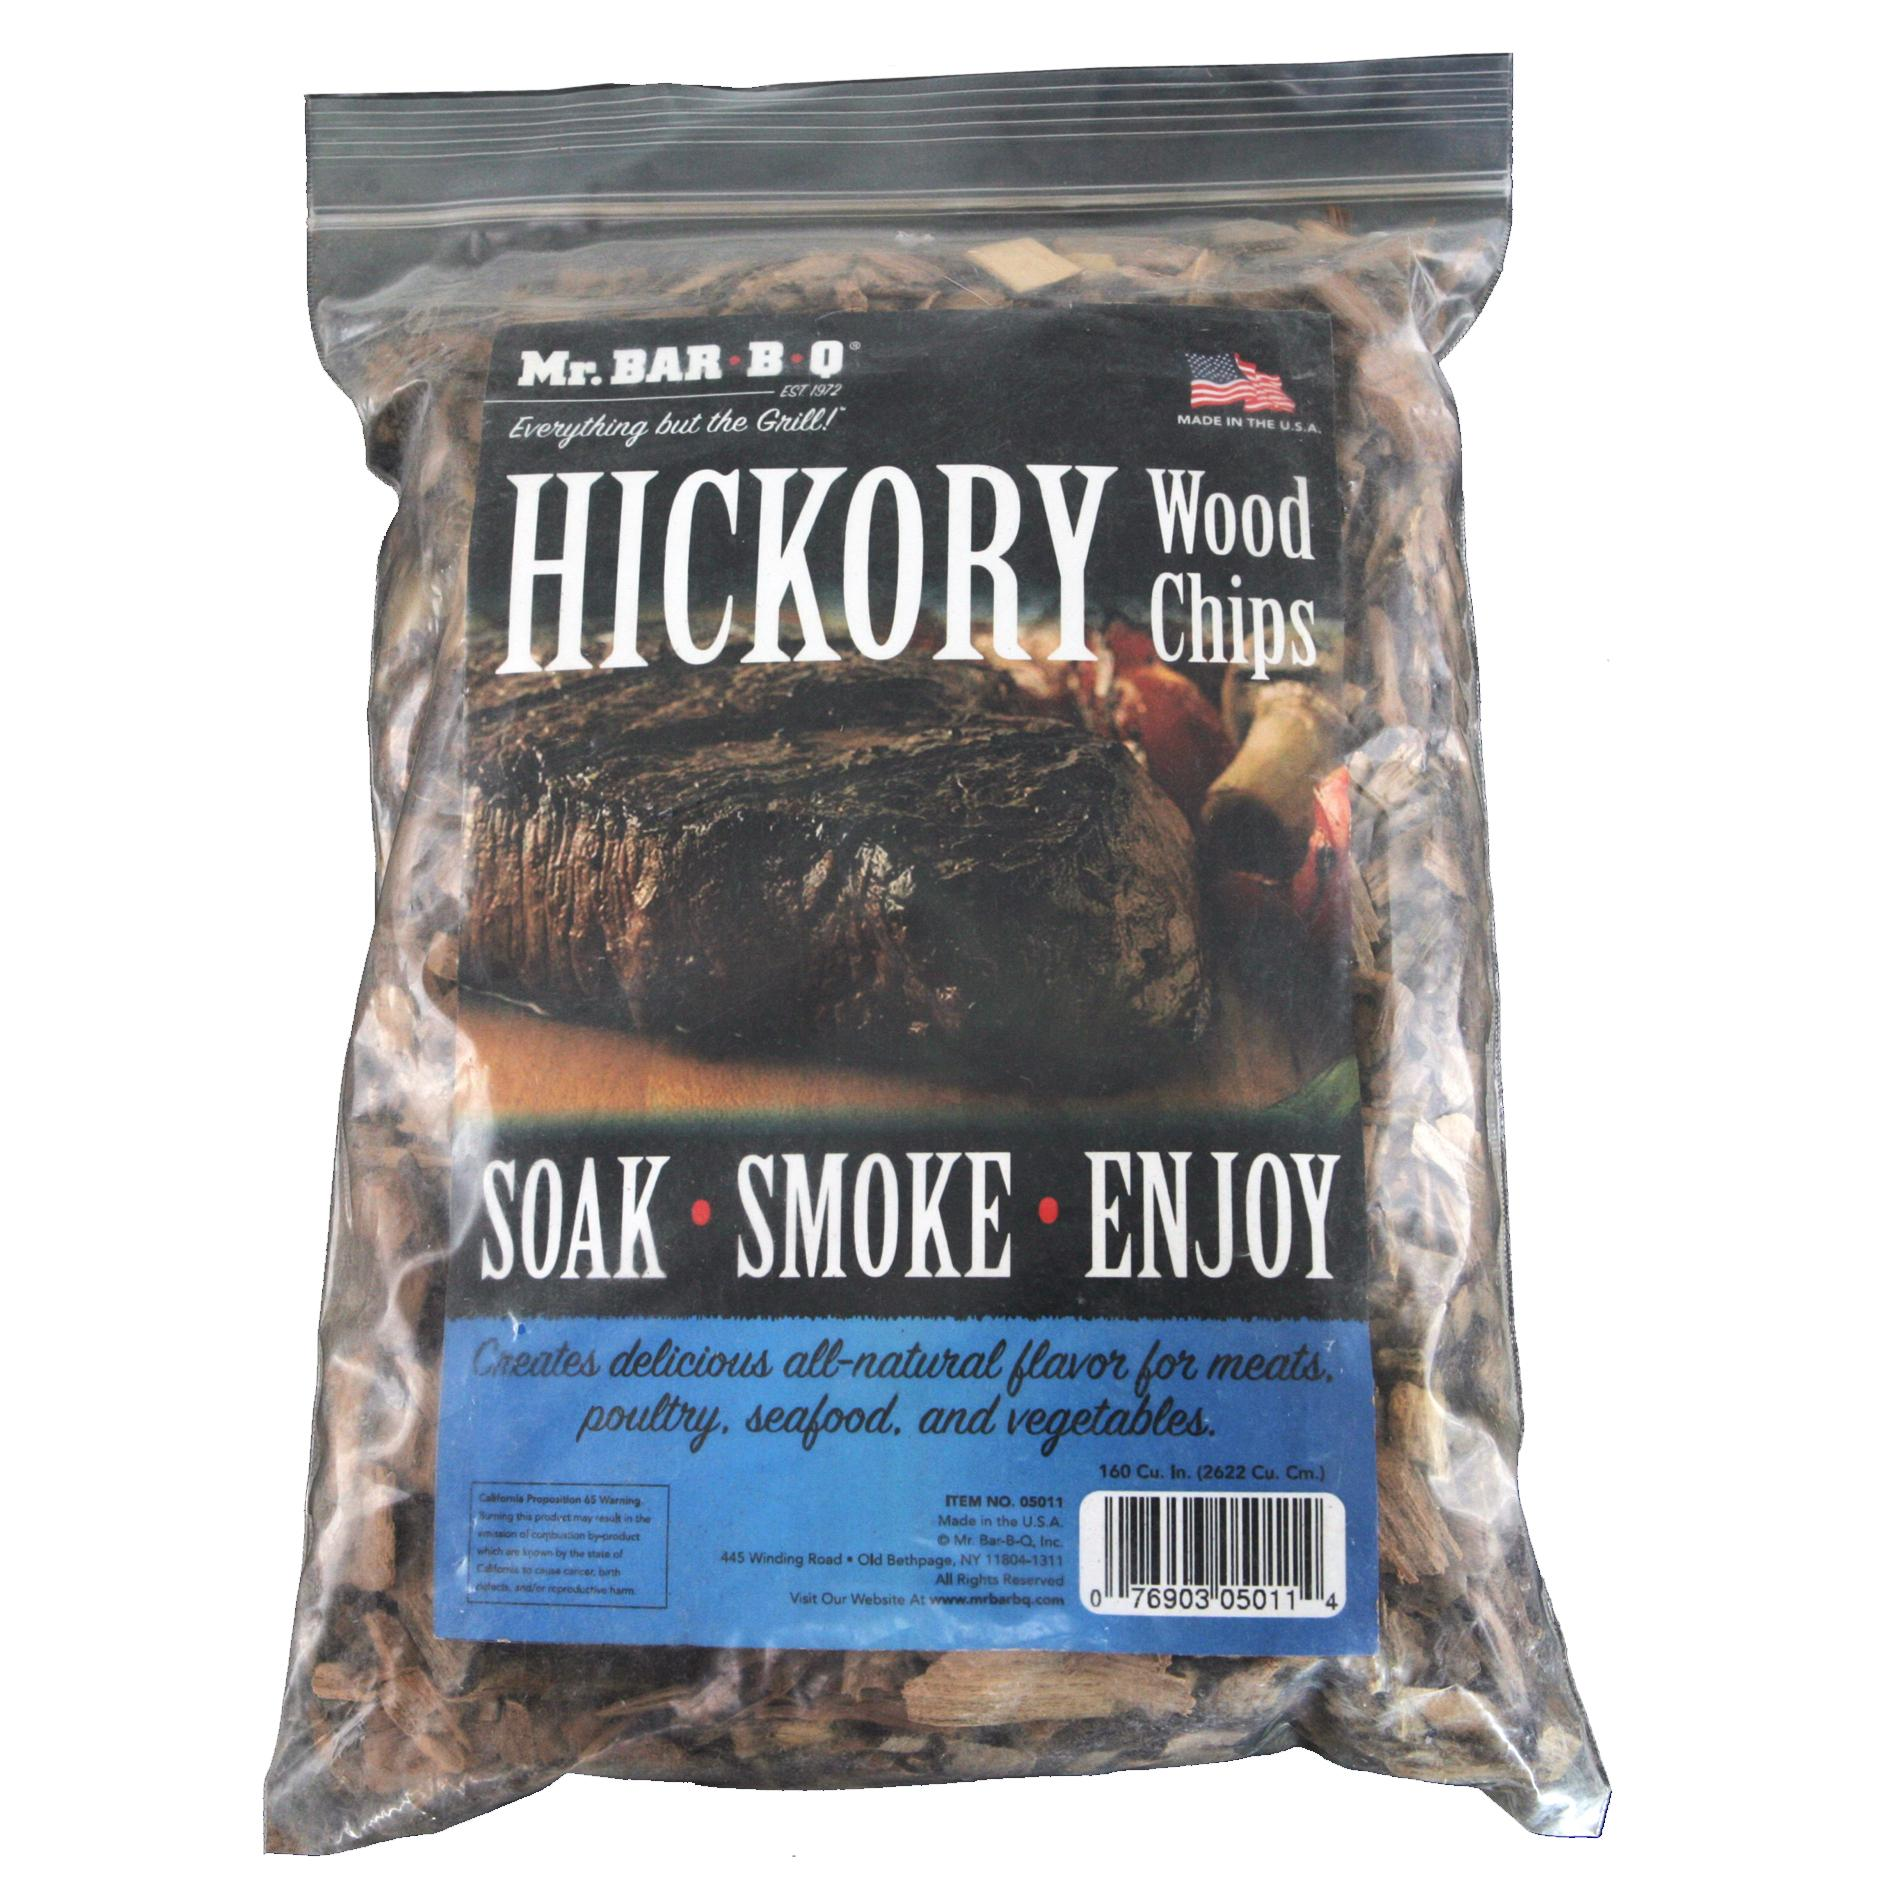 Mr. BBQ Hickory Wood Chips Bundle (Pack of 2)